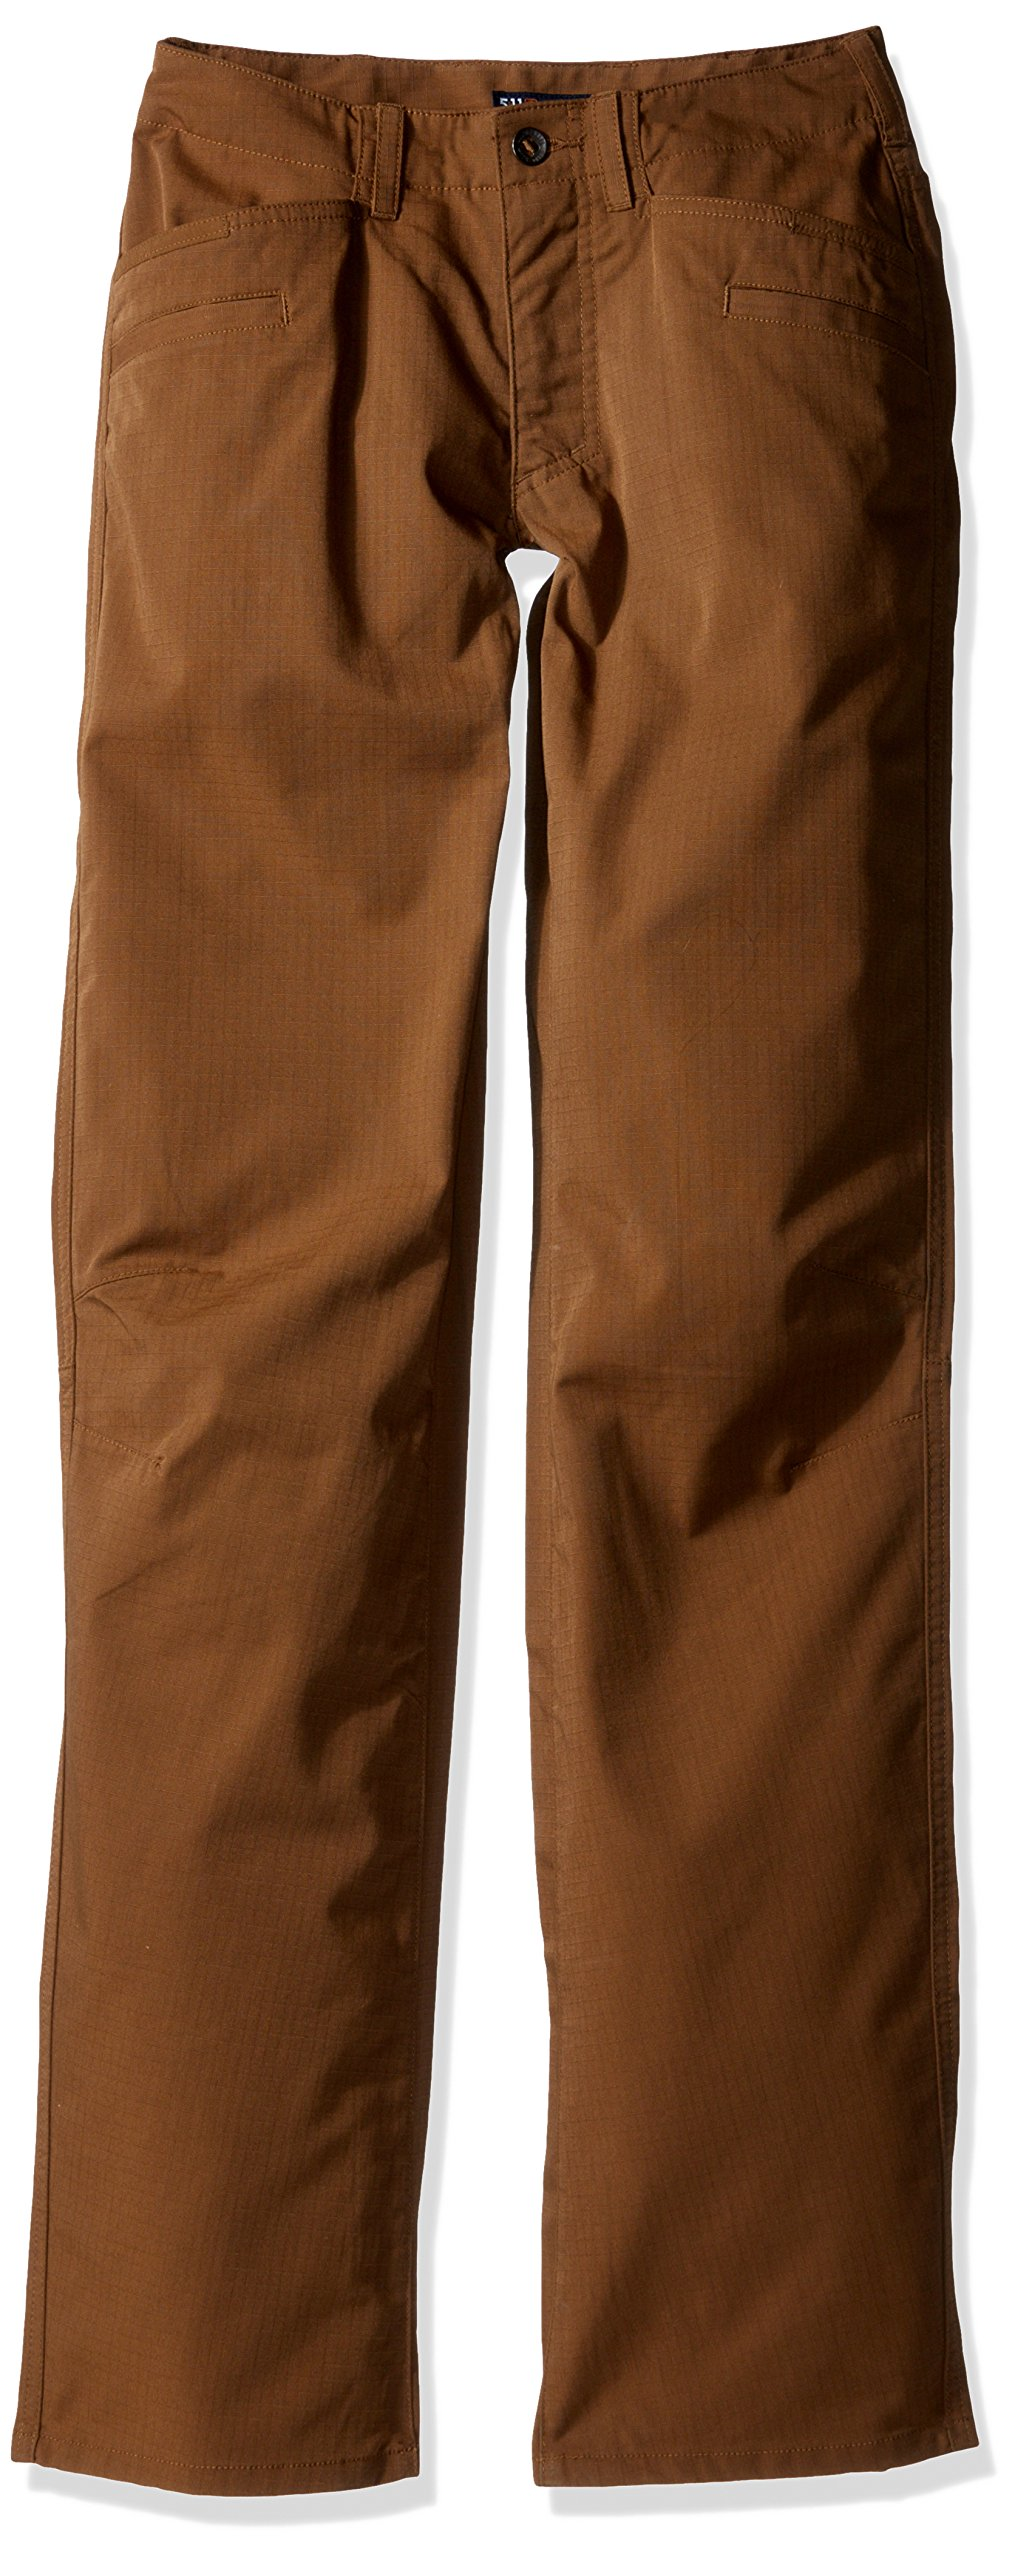 5.11 Tactical Men's Ridgeline Covert Work Pants, Teflon Finish, Poly-Cotton Ripstop Fabric, Style 74462 by 5.11